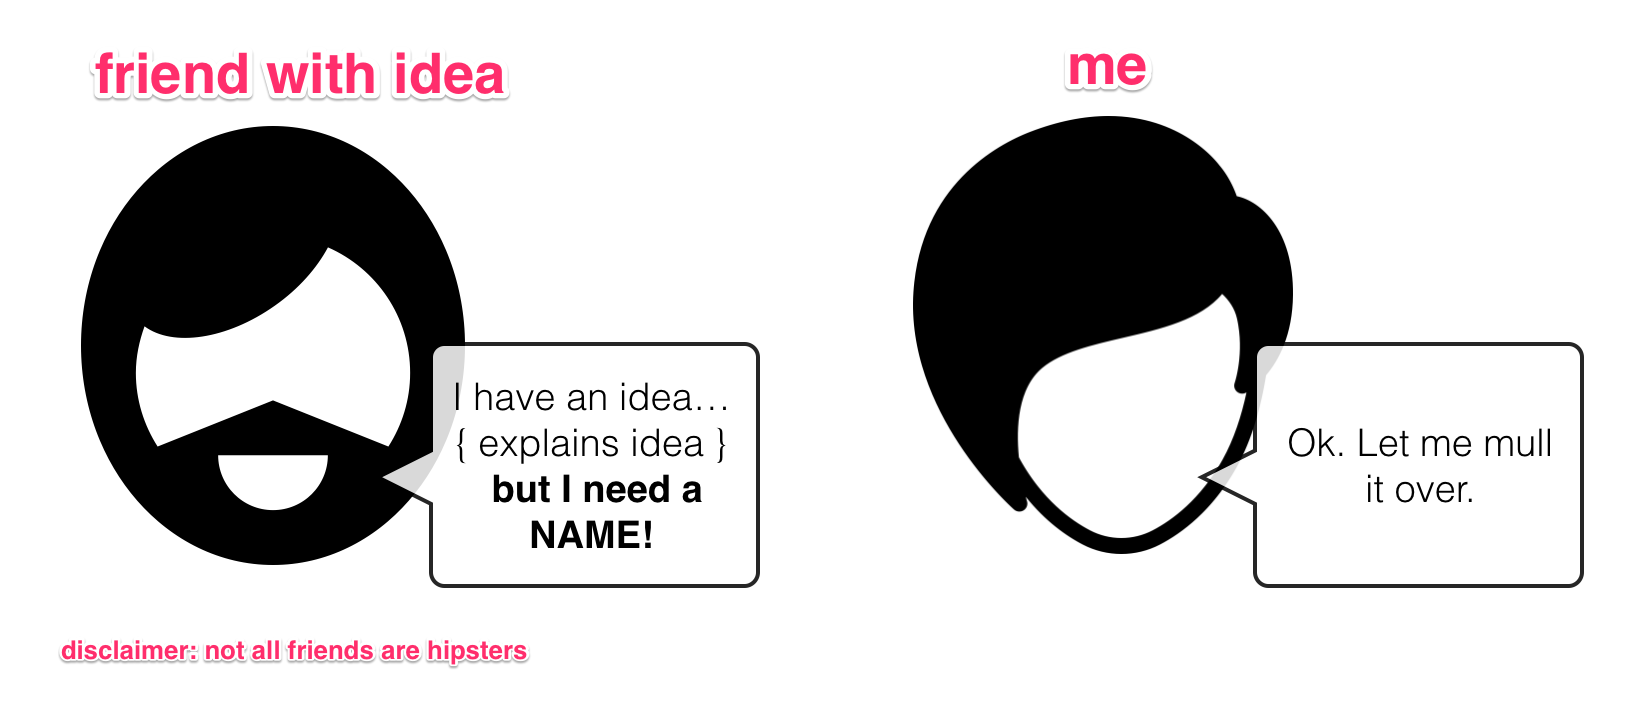 friends with idea